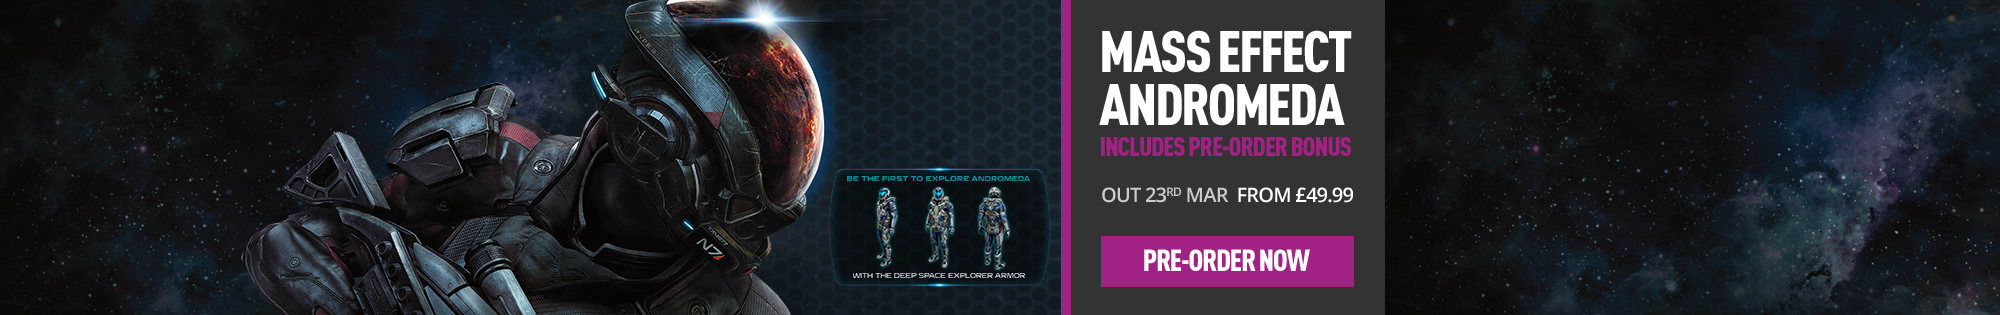 Mass Effect Andromeda for Playstation 4, Xbox One and PC